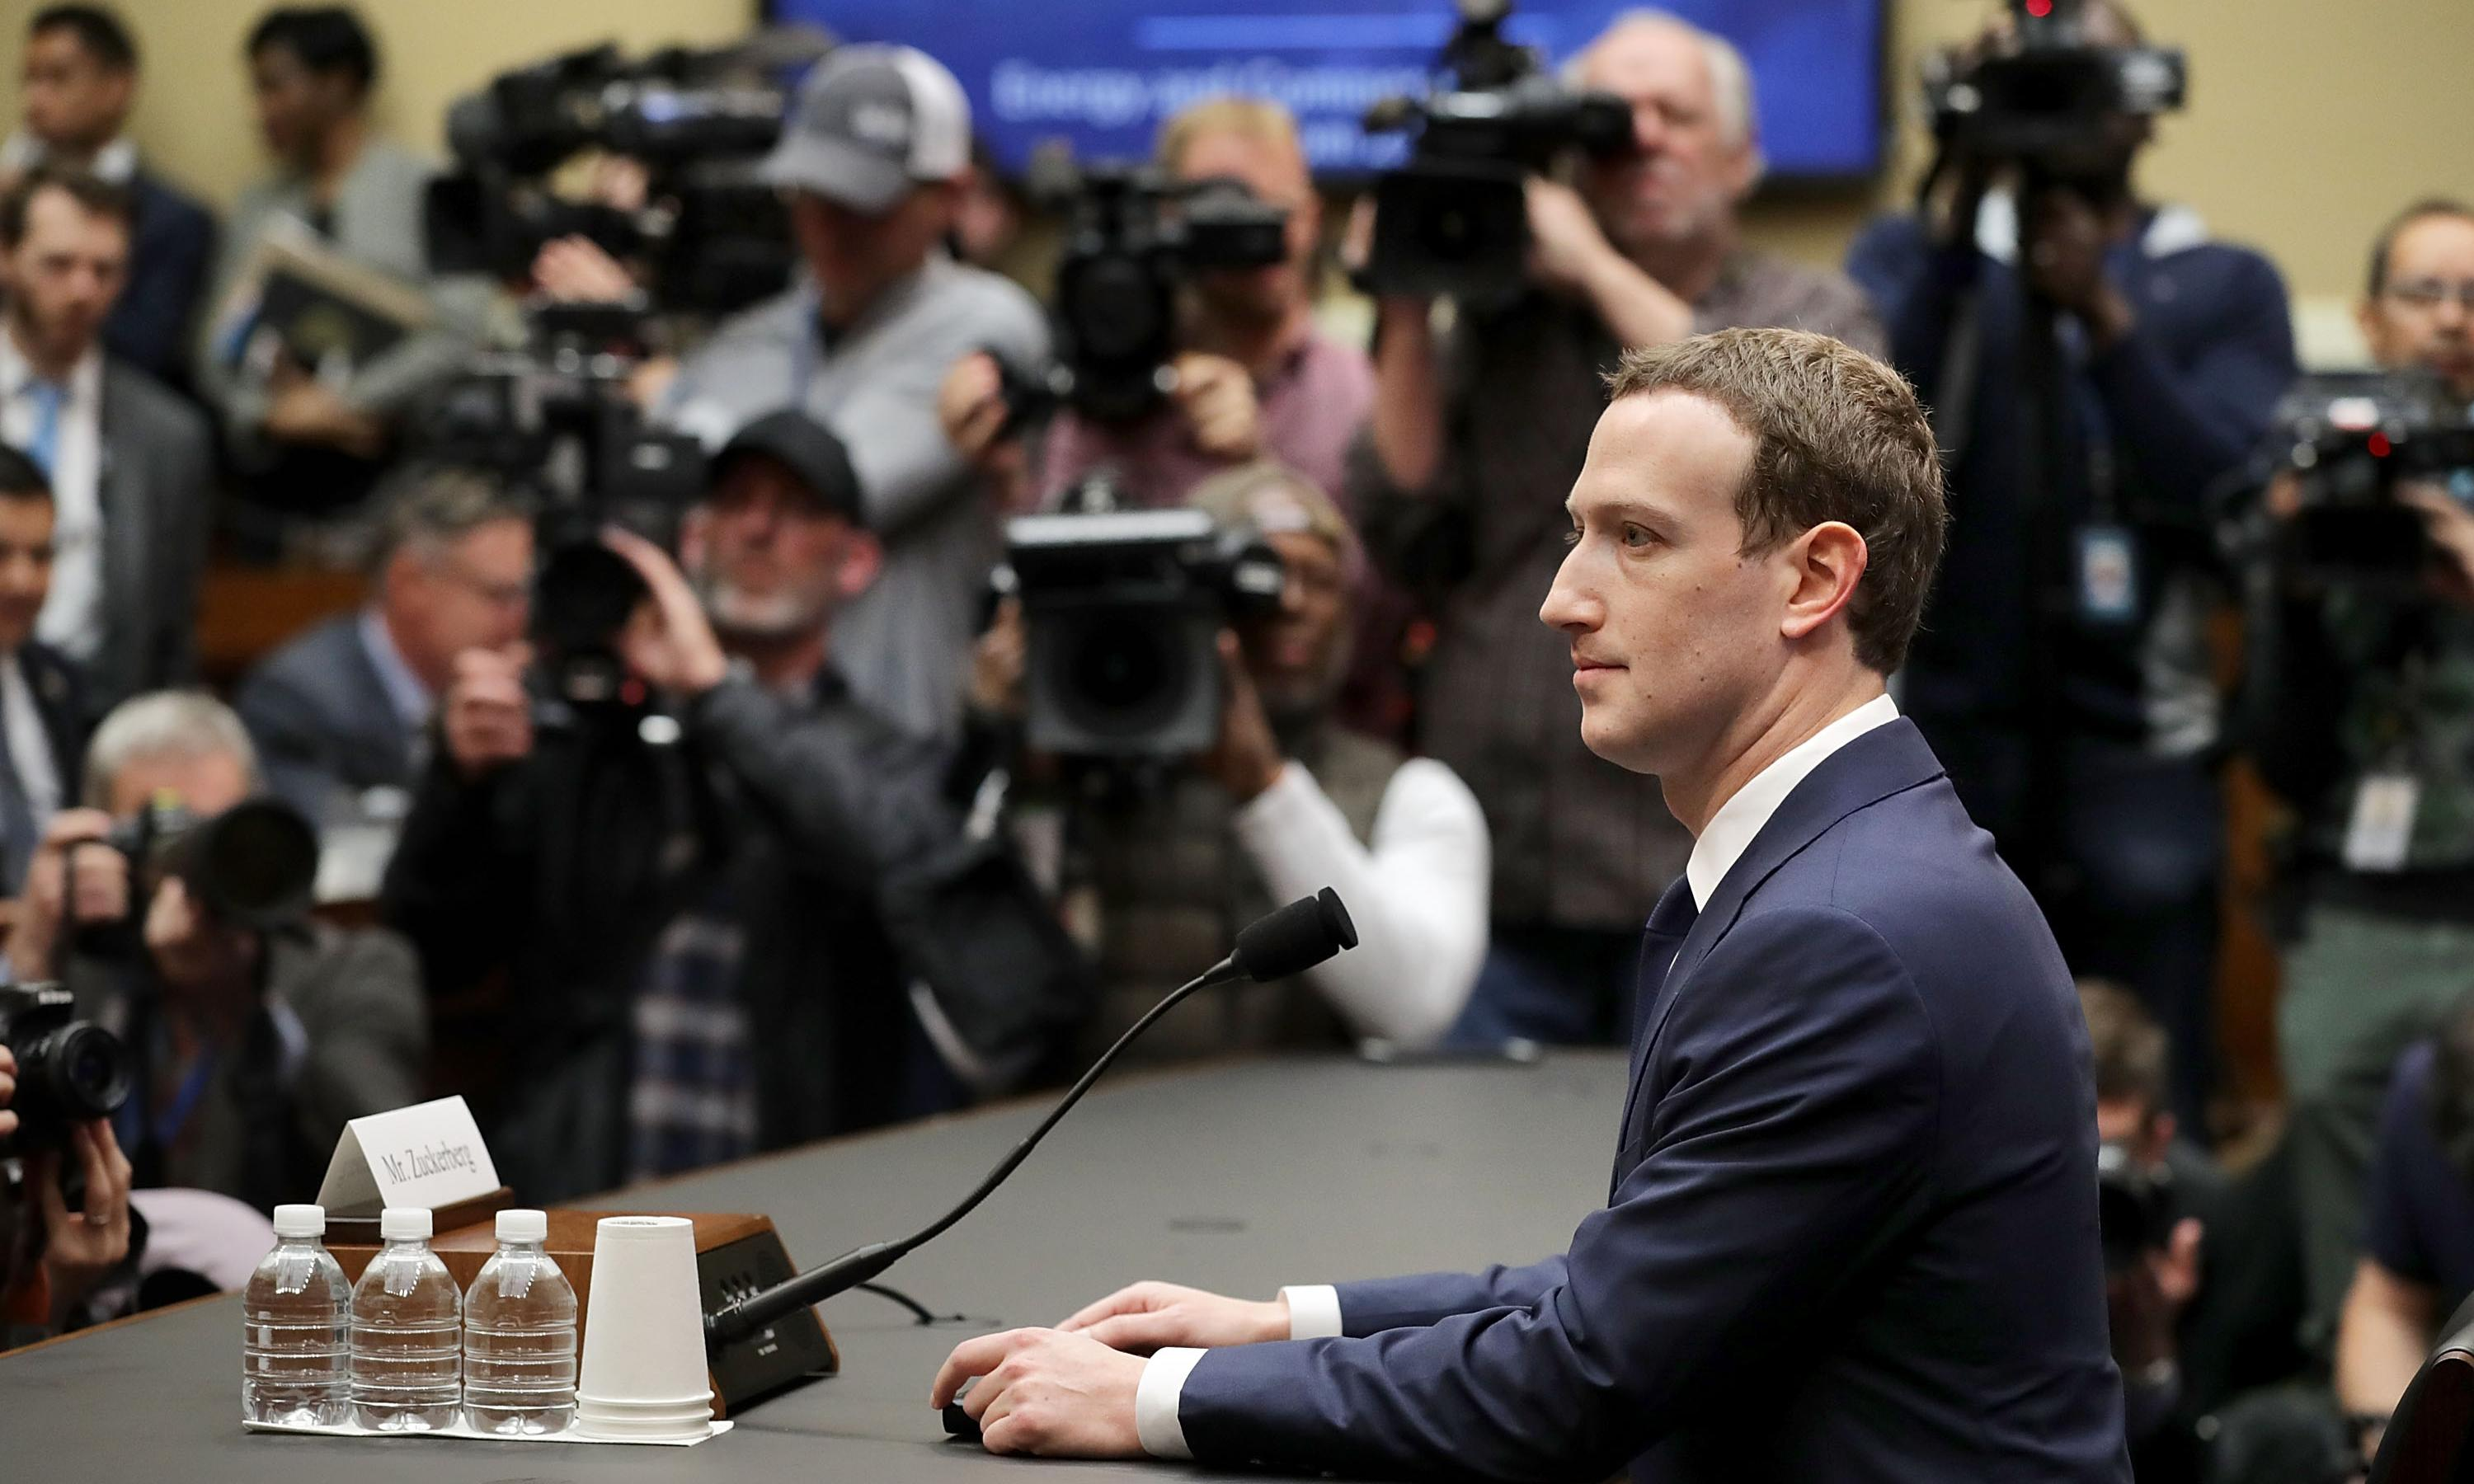 Facebook fined for data breaches in Cambridge Analytica scandal